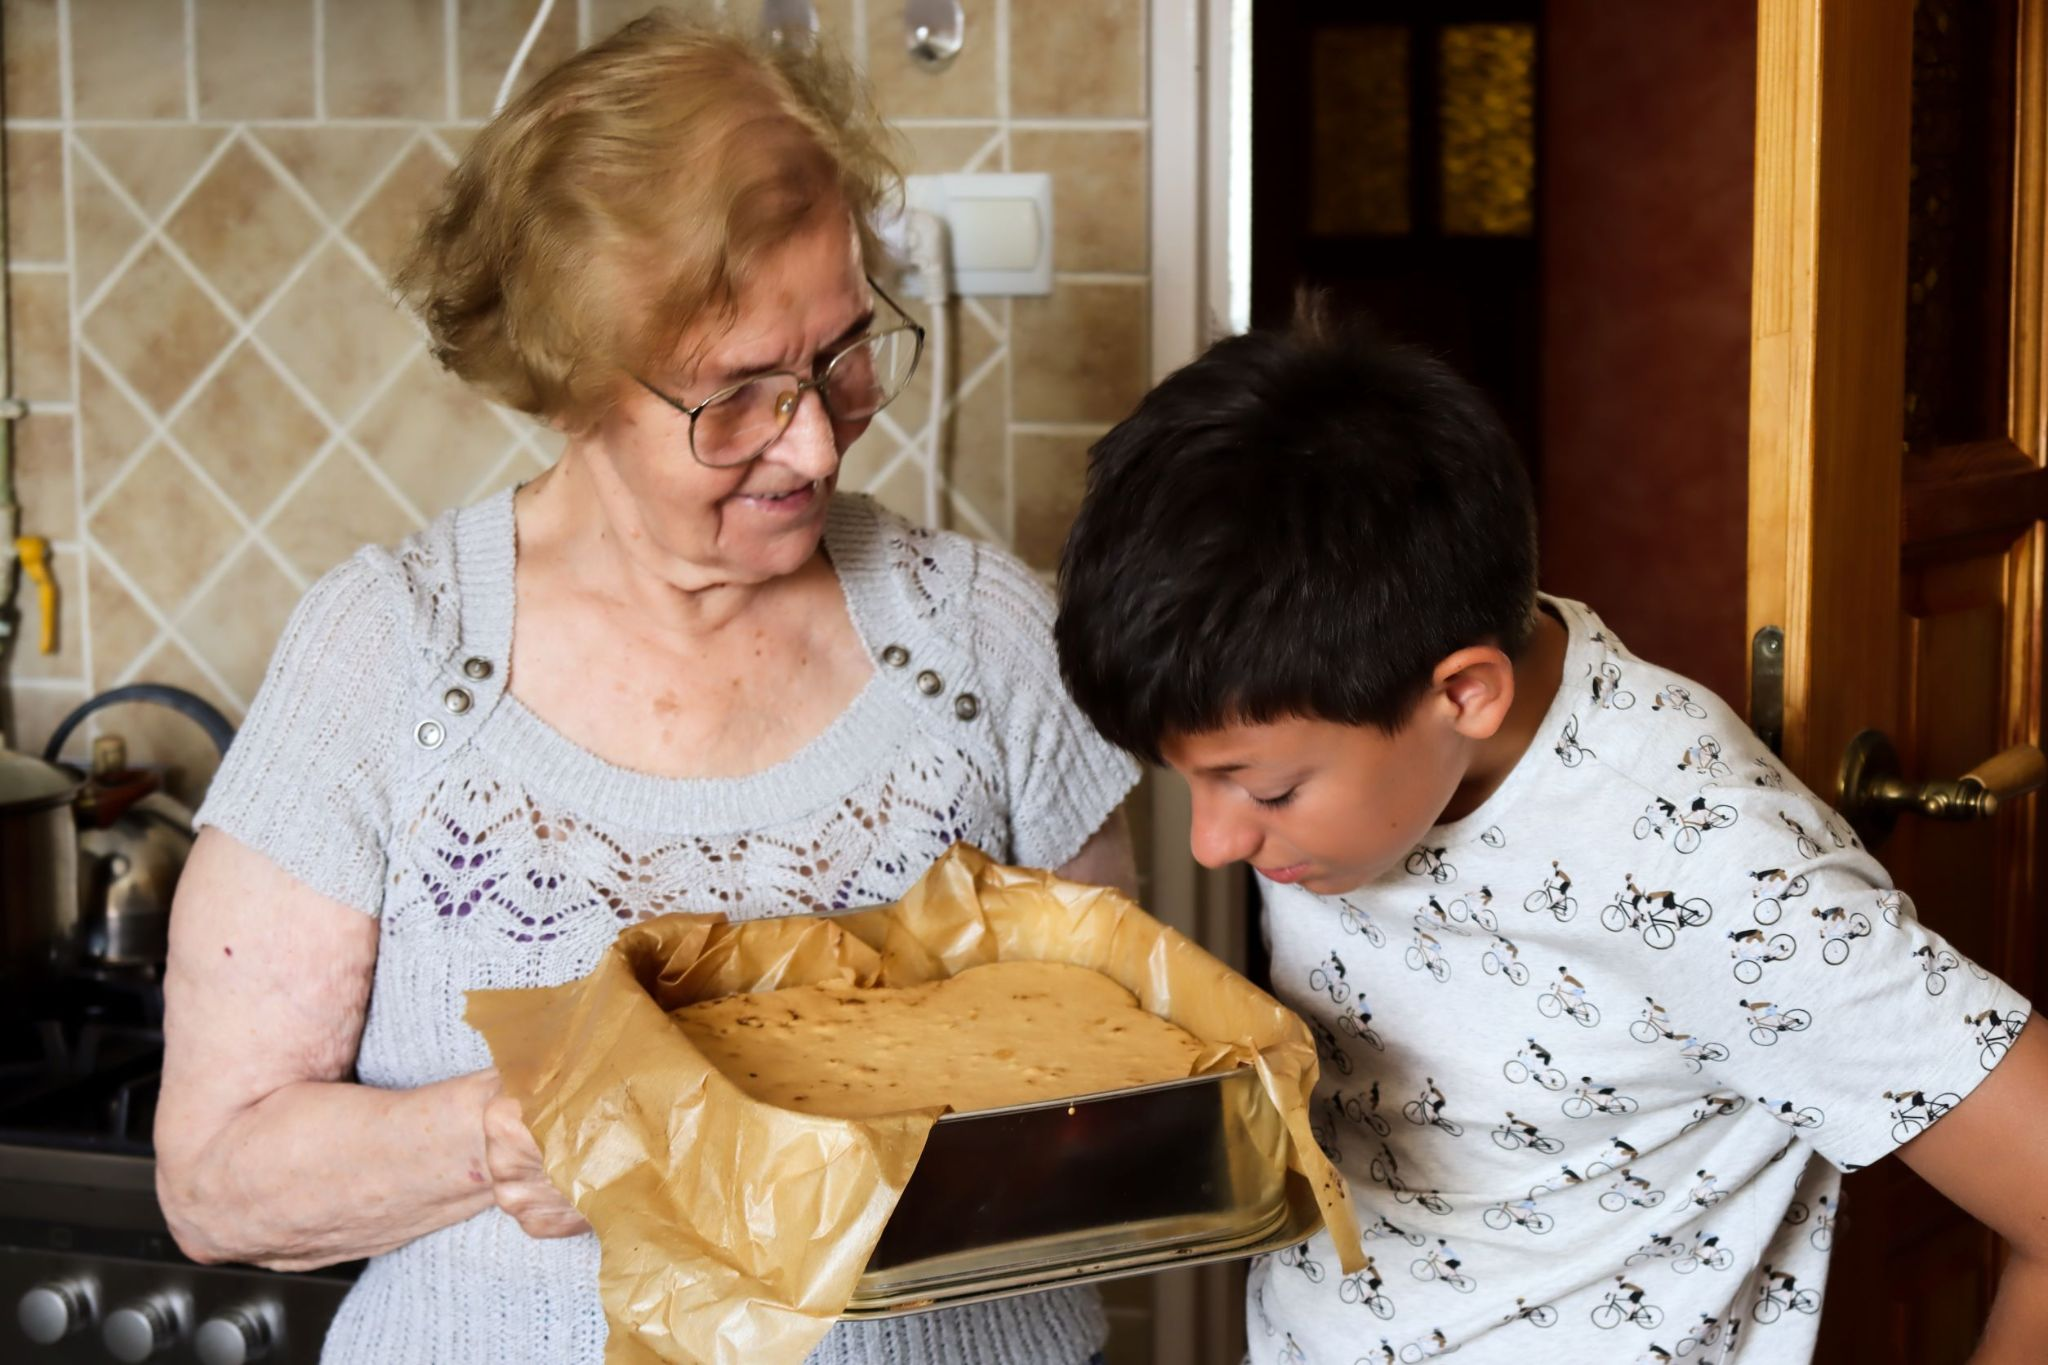 older-woman-bakes-cake-for-young-boy